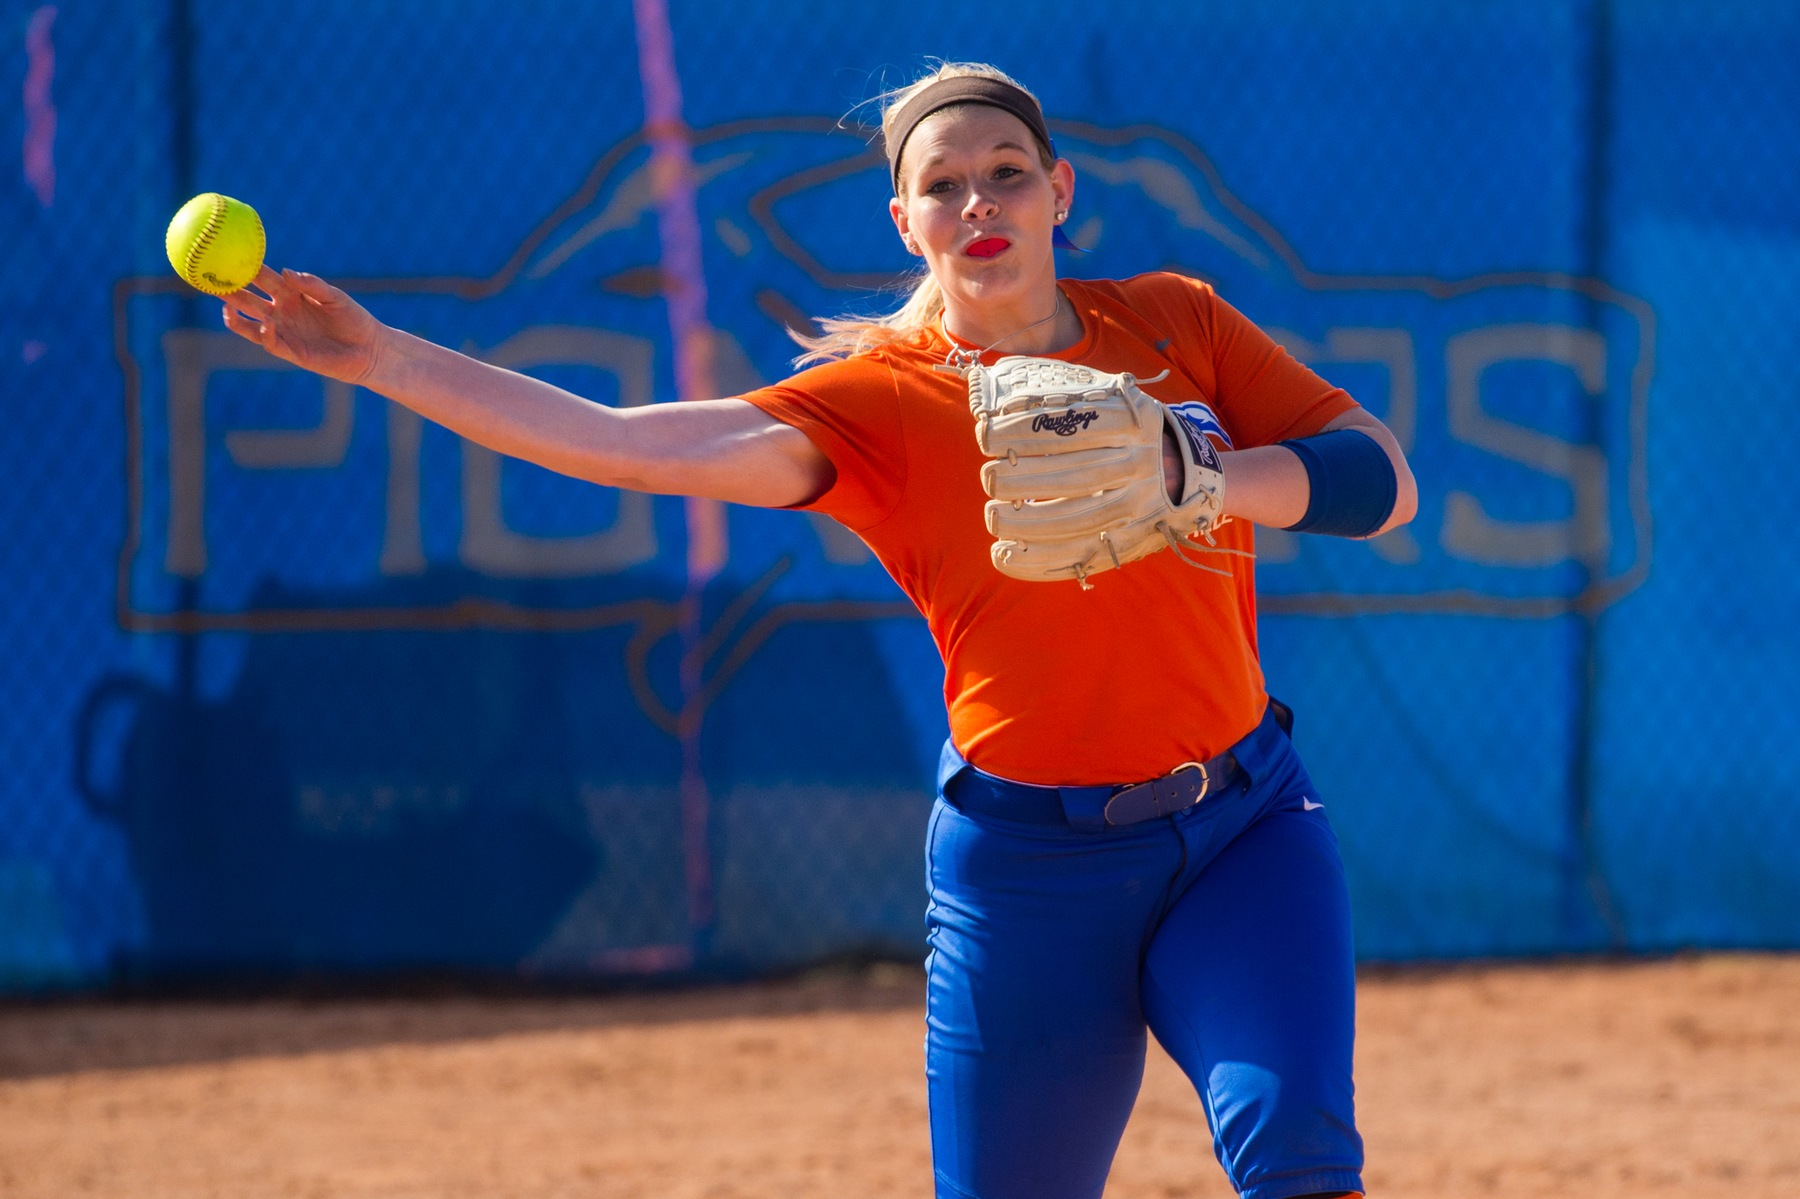 Pioneers drop two games in Arizona